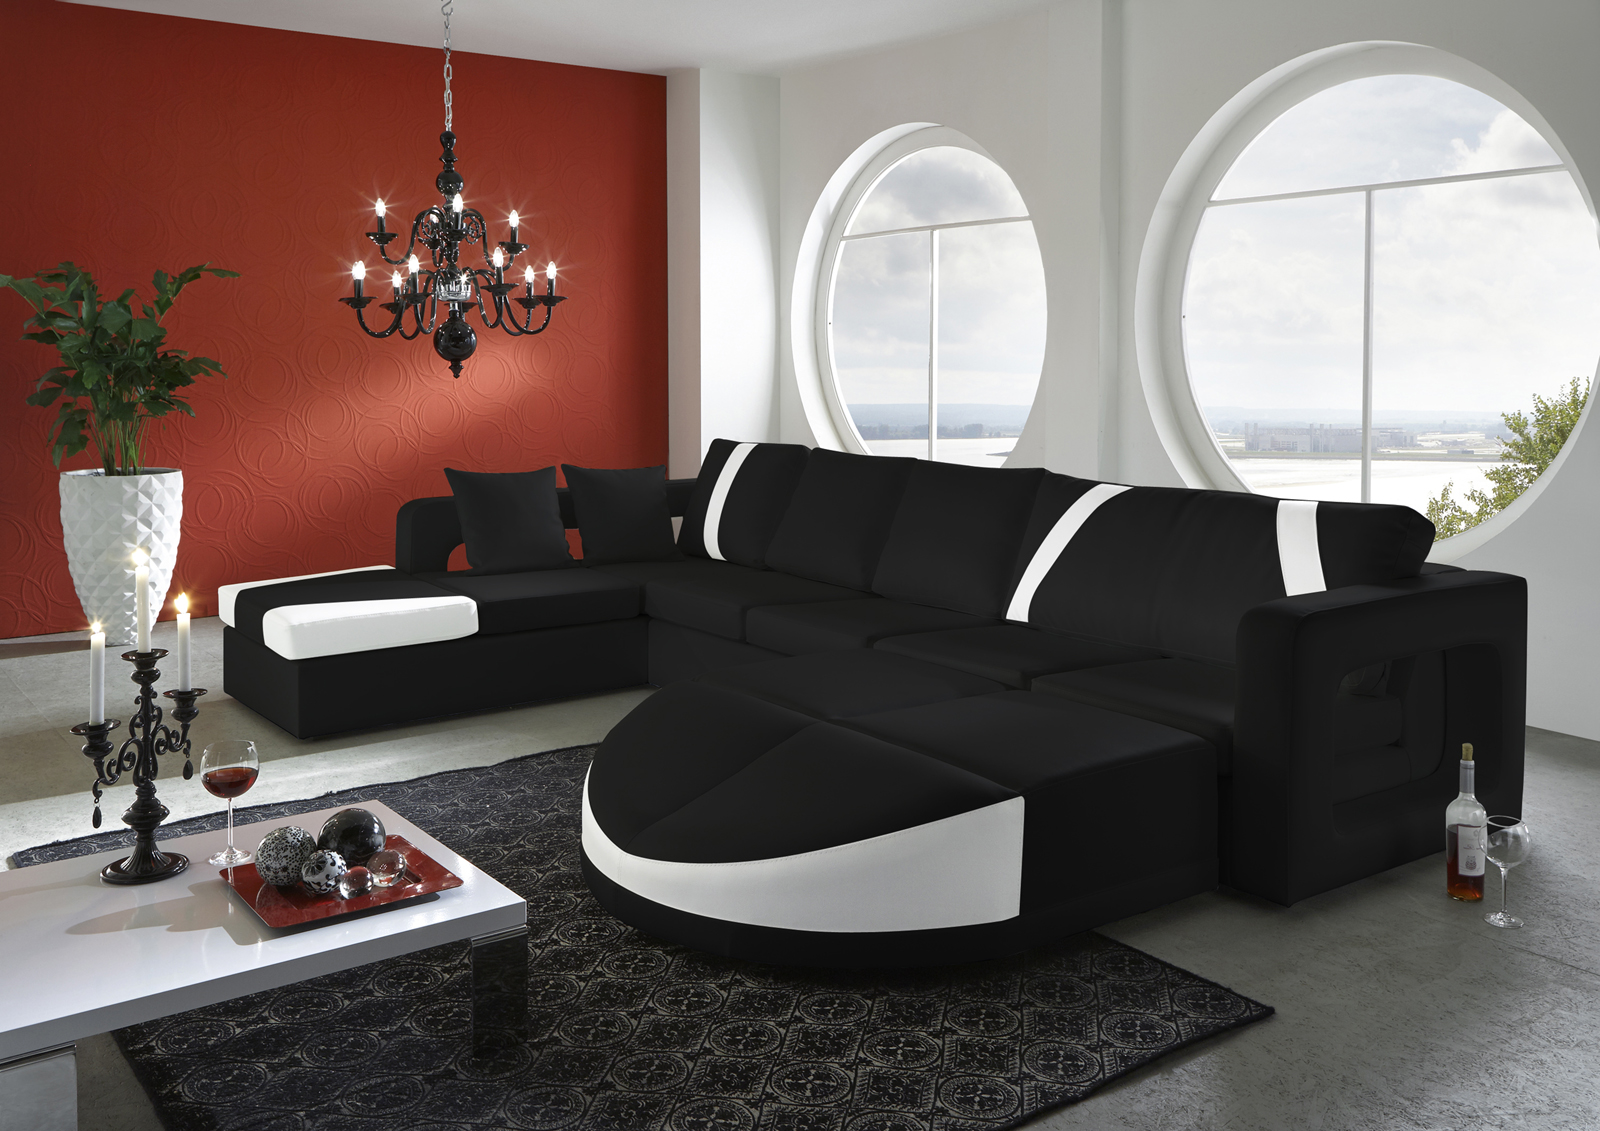 sam sofa schwarz wei diamante wohnlandschaft 215 x 336 x. Black Bedroom Furniture Sets. Home Design Ideas